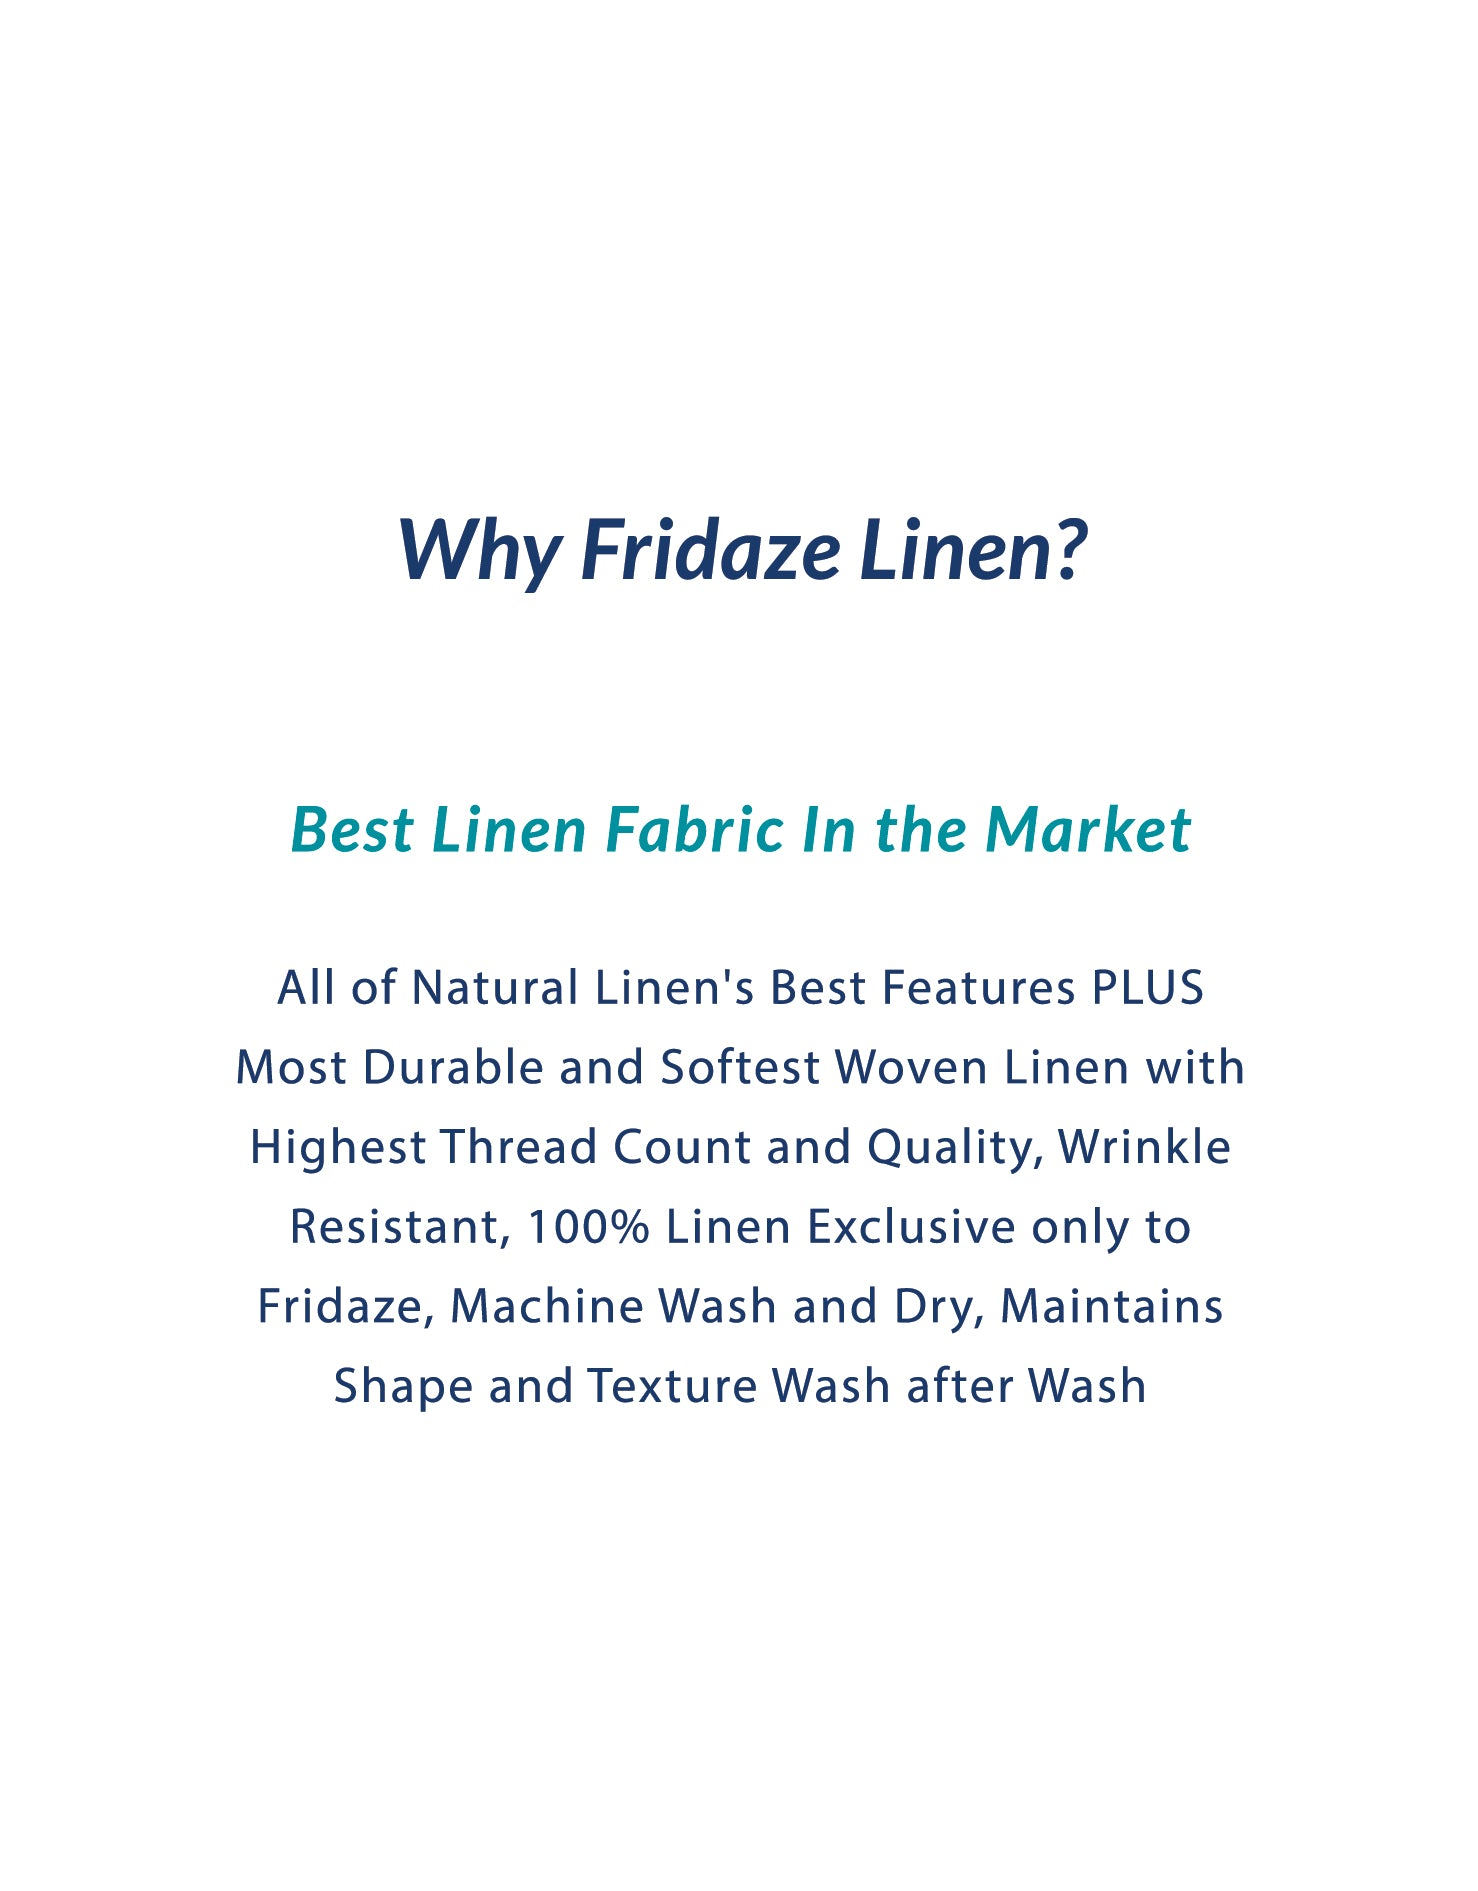 Adults - Fridaze 100% Linen Face Mask incl. one PM 2.5 Filter - Lipstick